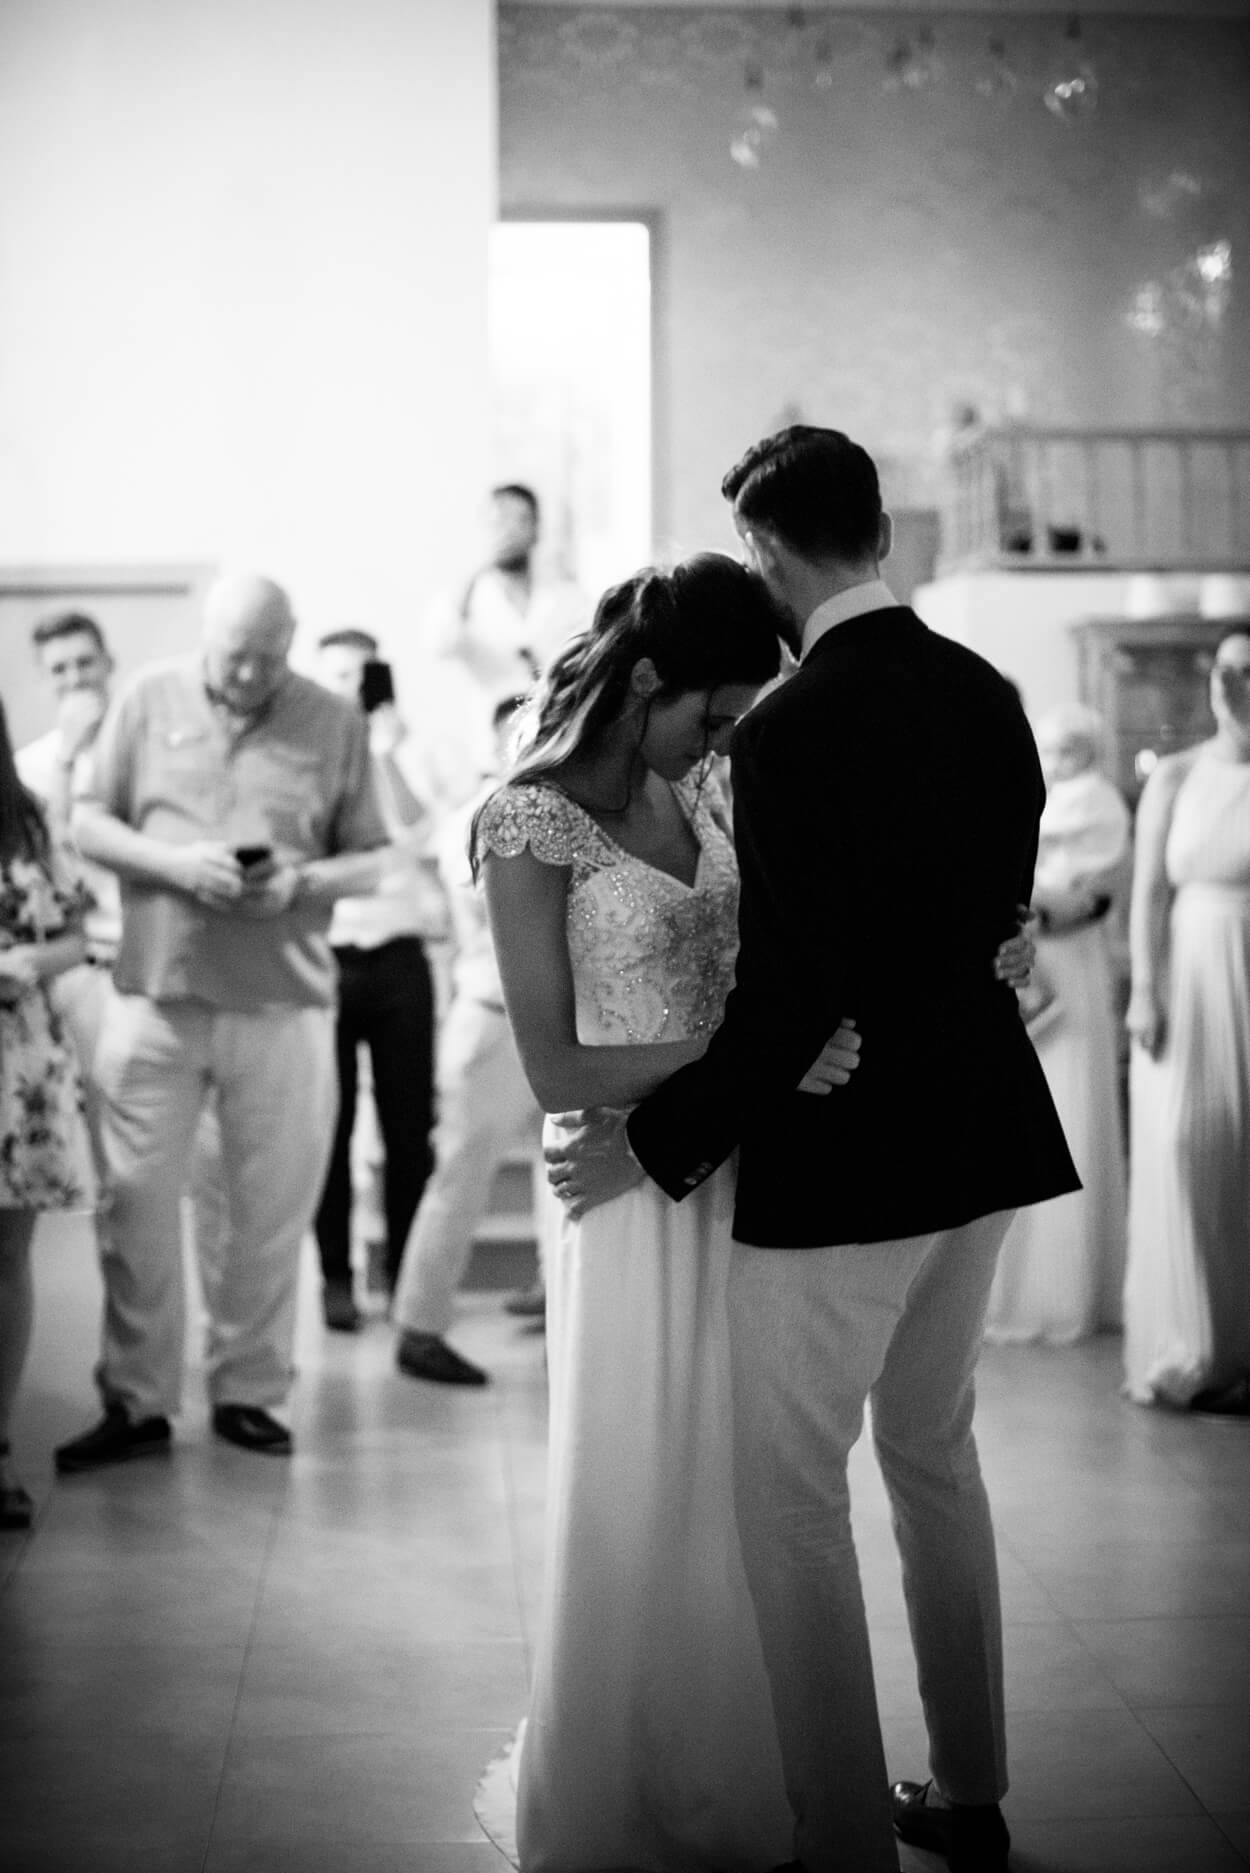 bride groom first dance black and white grain photo